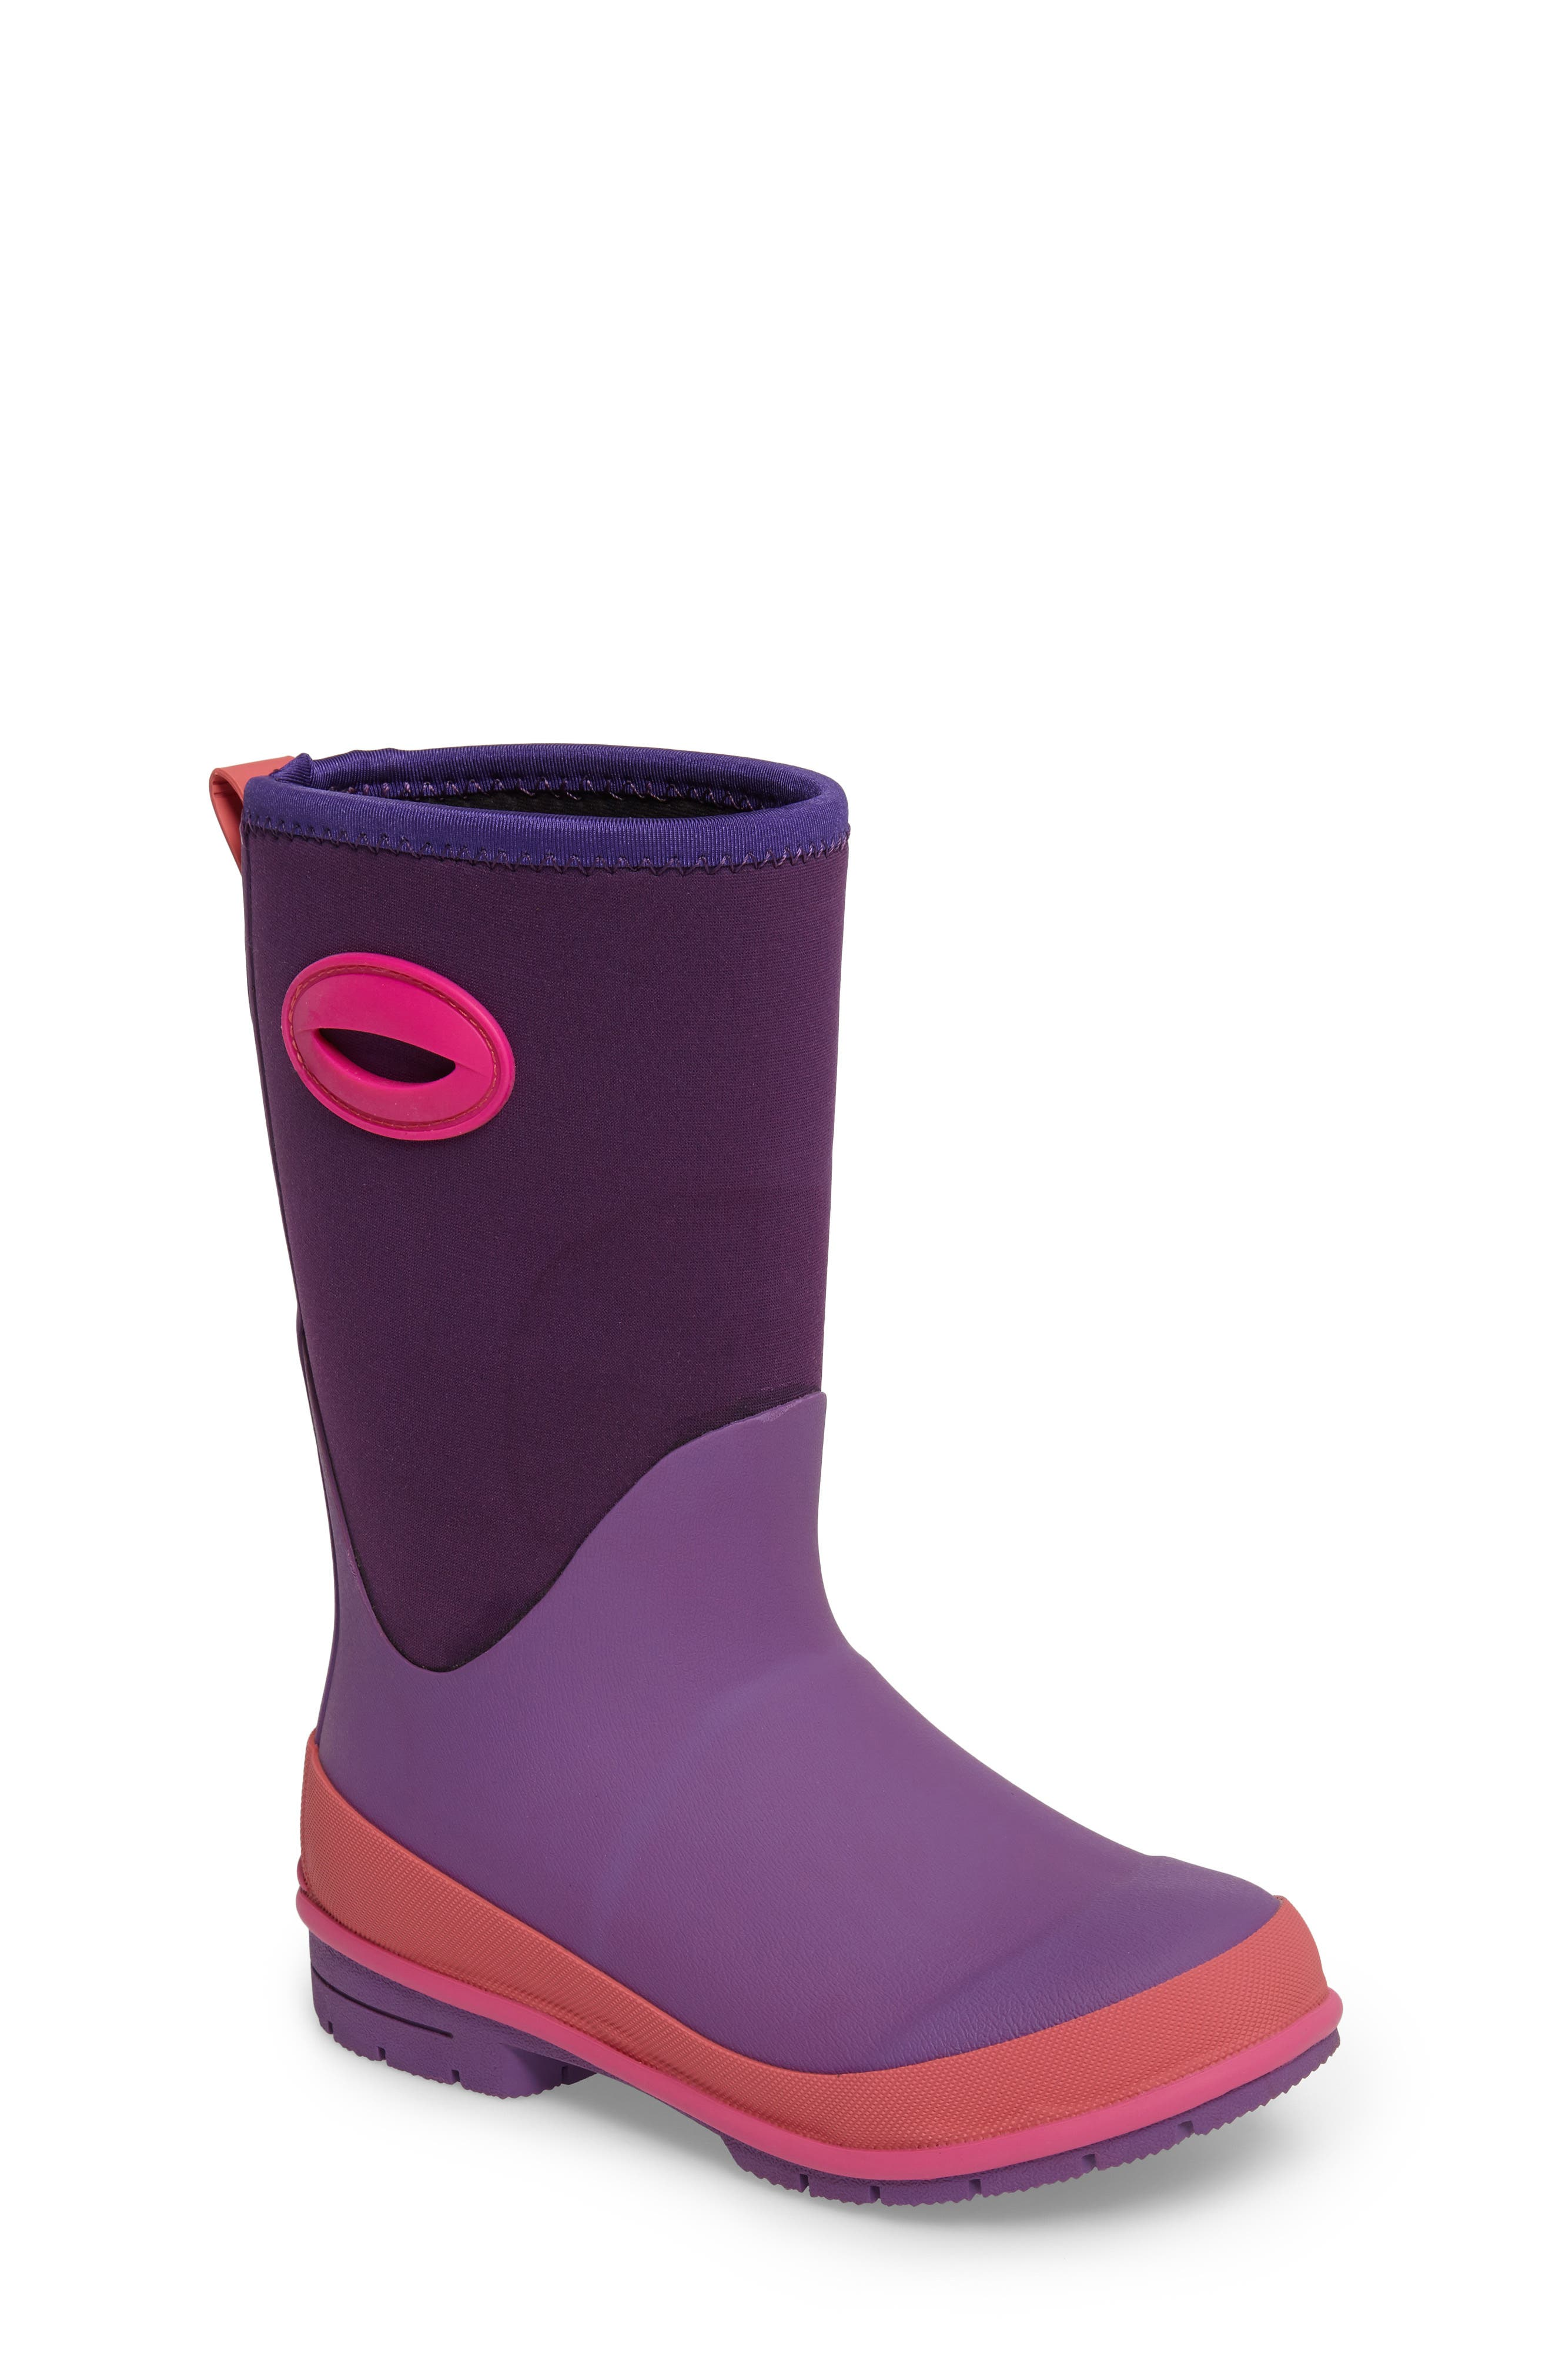 Neoprene Purple Snow Boot,                         Main,                         color, 511